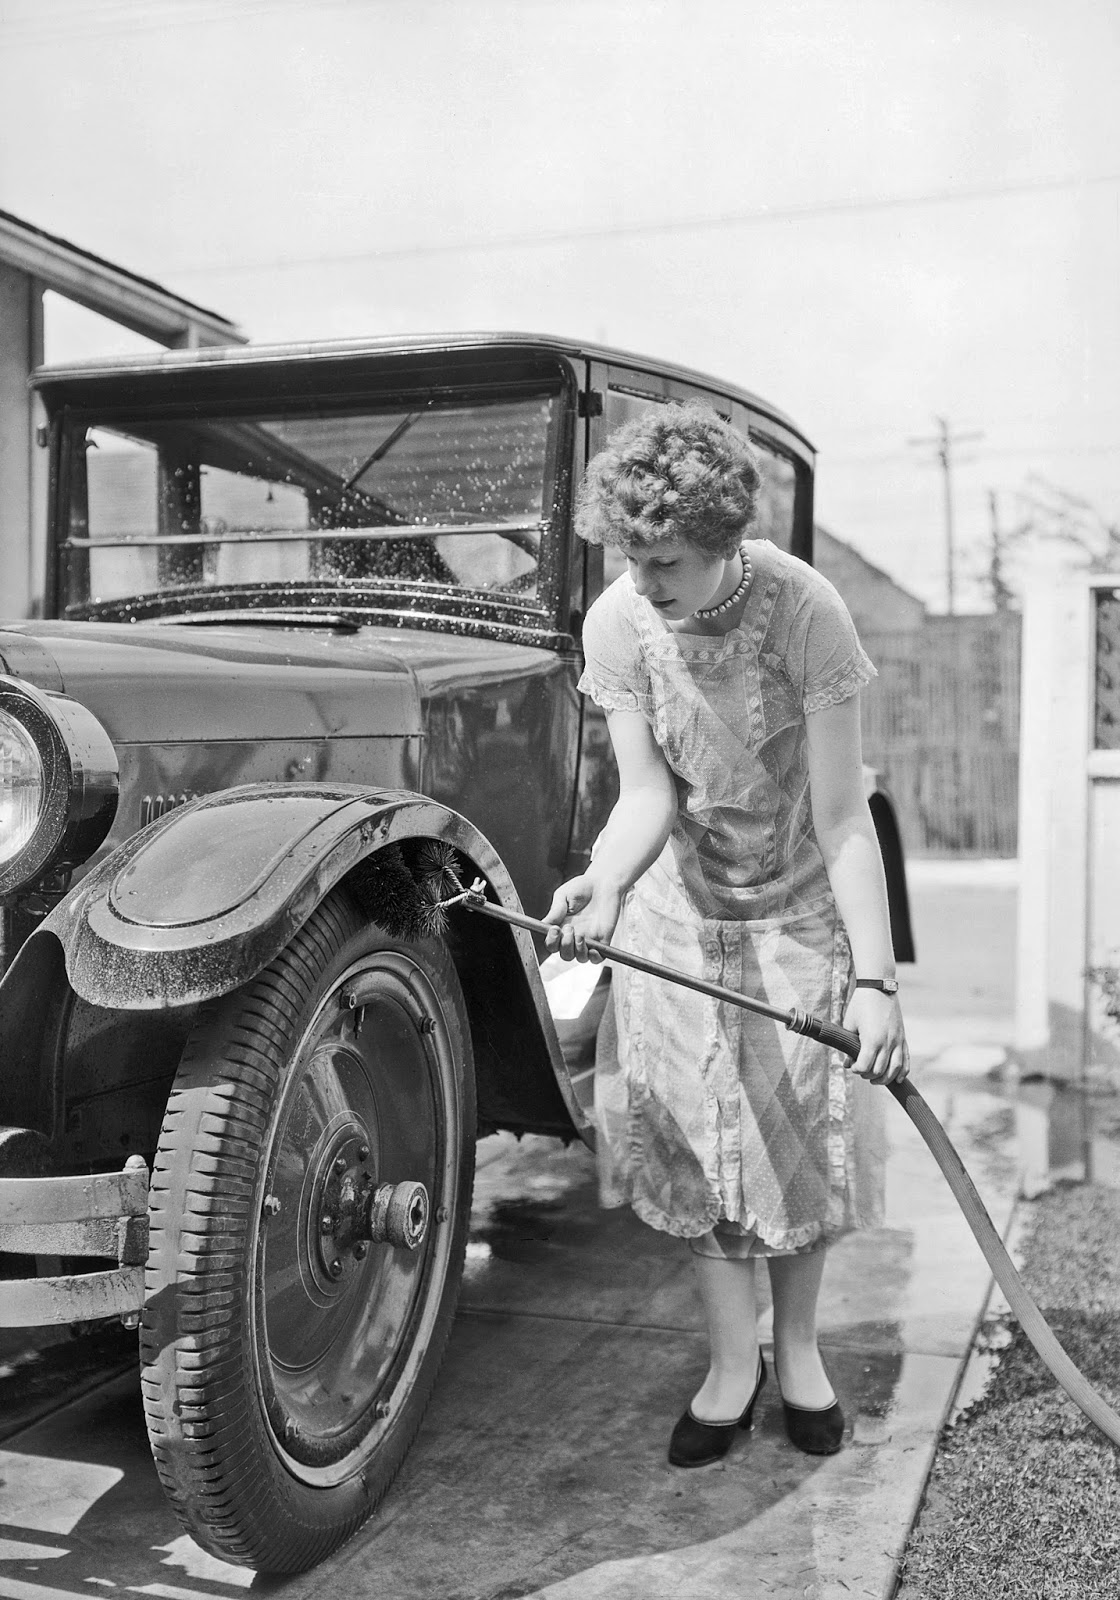 History in Photos: Vintage Photos of Vintage Cars